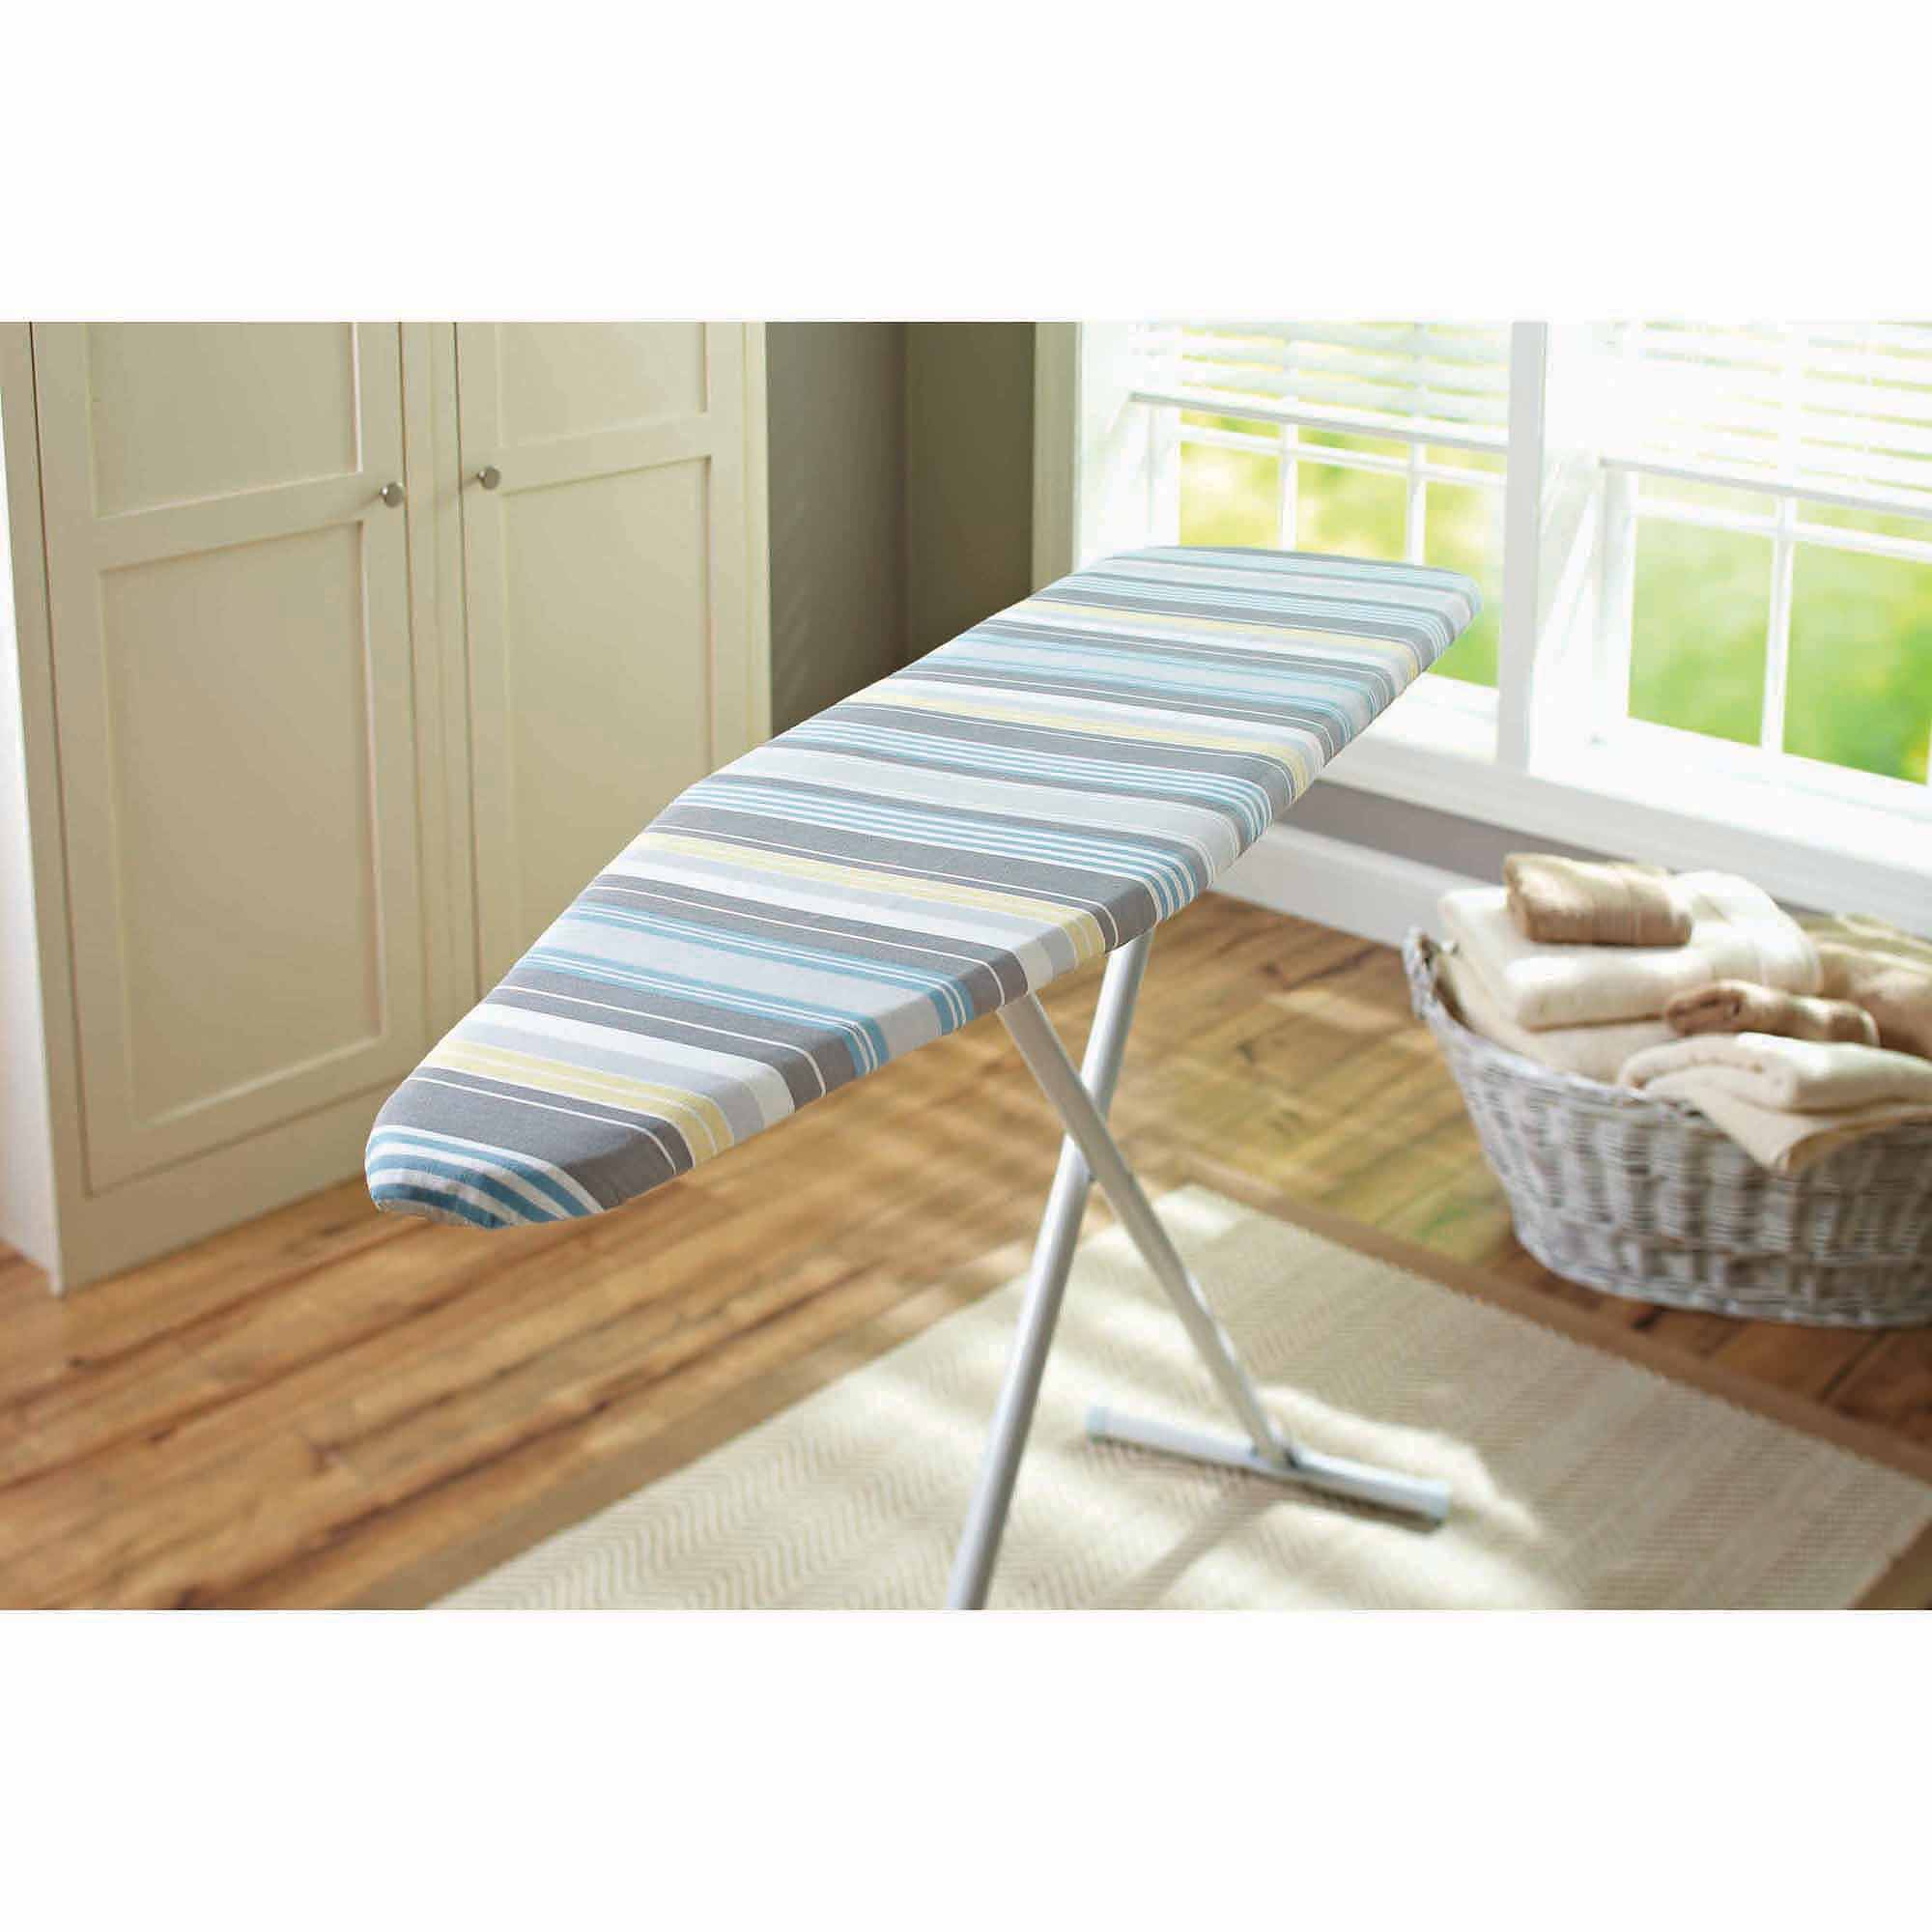 Better Homes and Gardens Ironing Board Reversible Replacement Pad and Cover, Blue, Gray and Cream (Stripe Side), Platinum Silver (Solid Side)